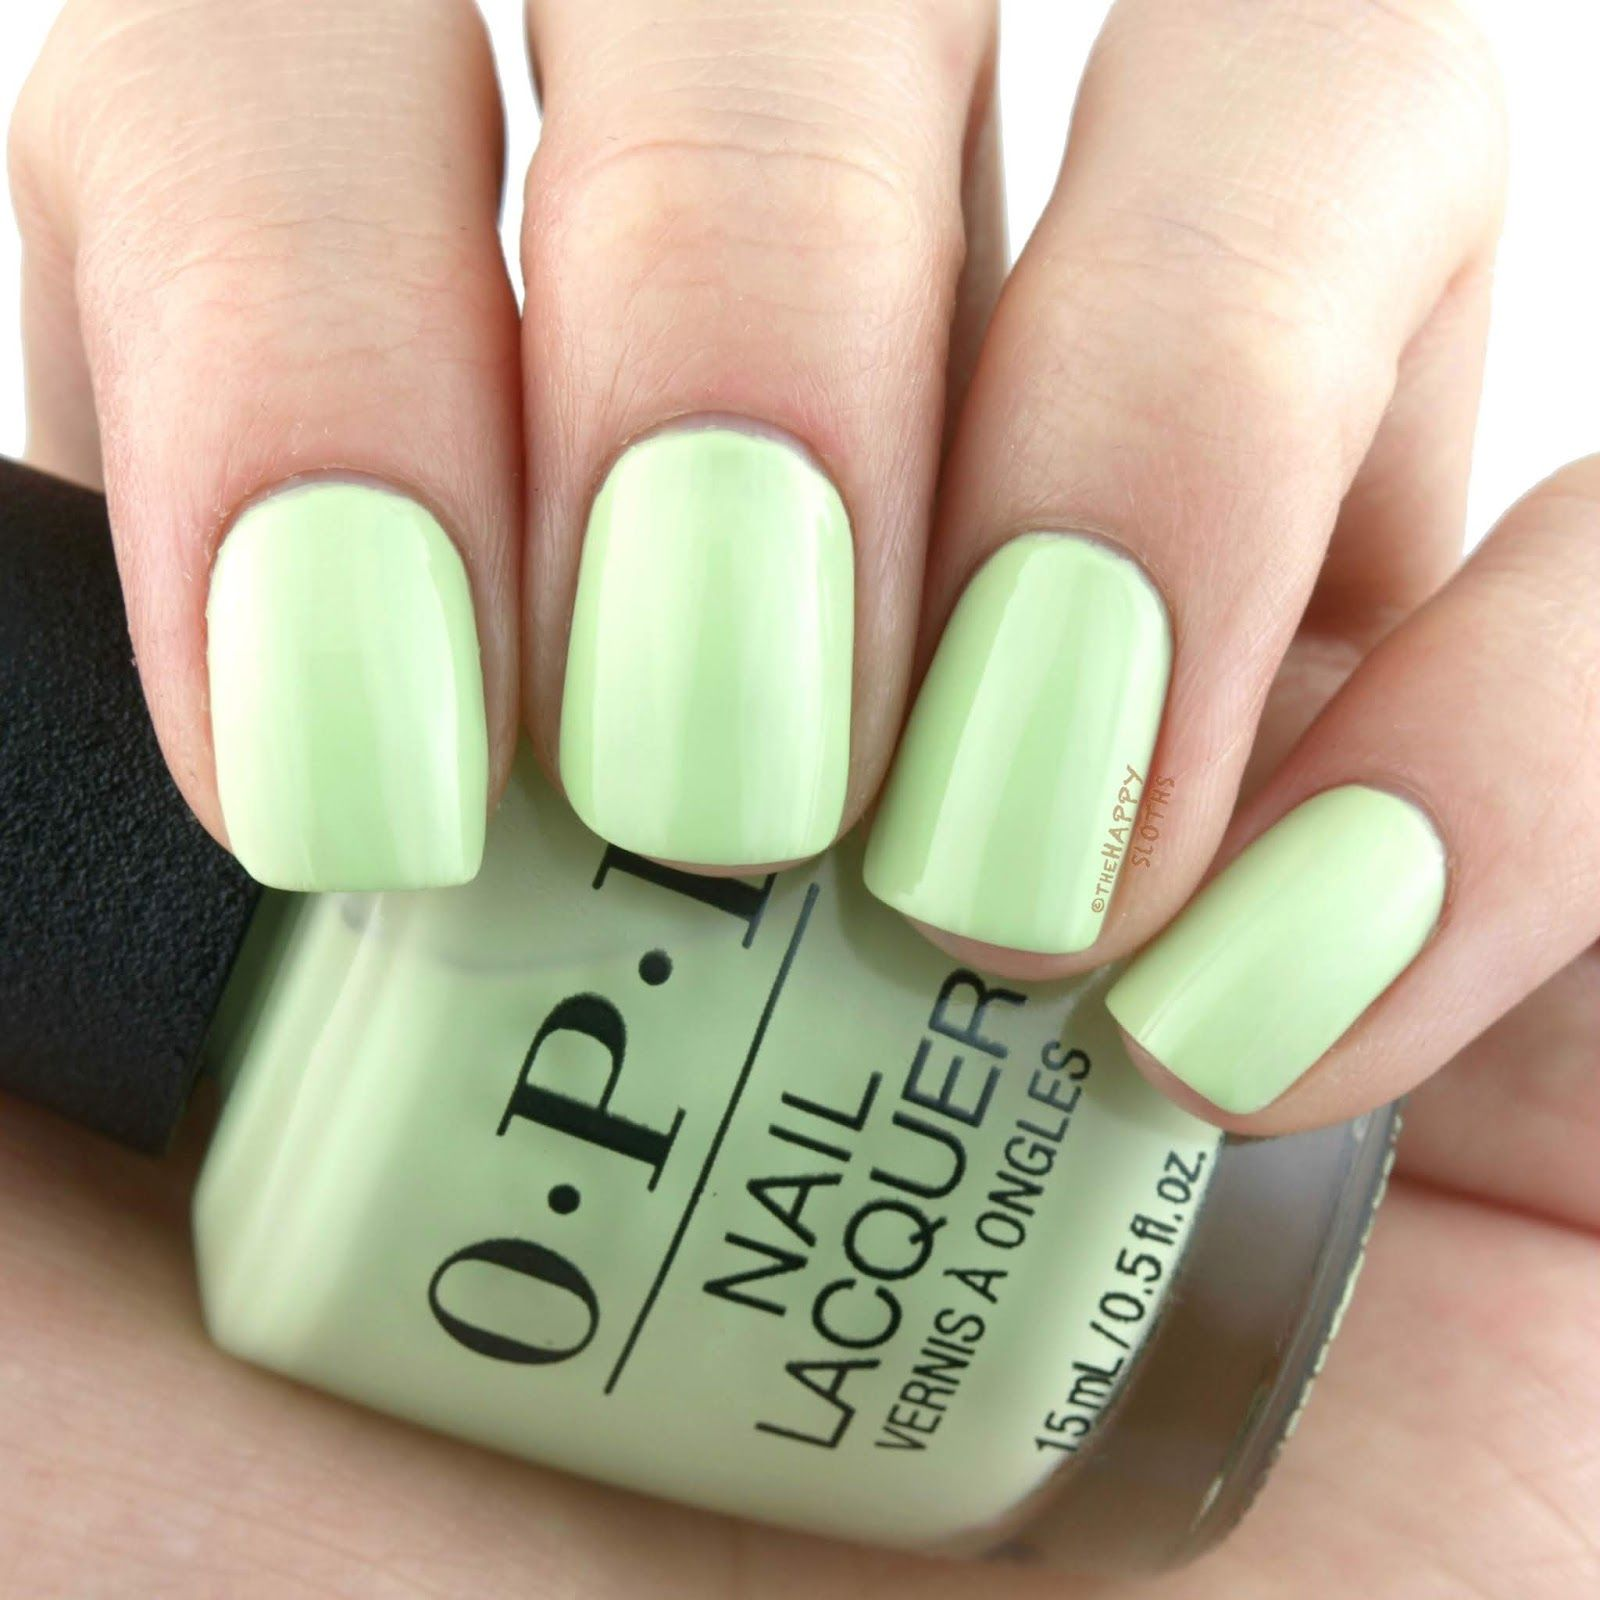 Opi How Does Your Zen Garden Grow Pointer Ring Vs That S Hula Rious Middle P Garden Grow Hularious Middlep Opi Pointerring Zen